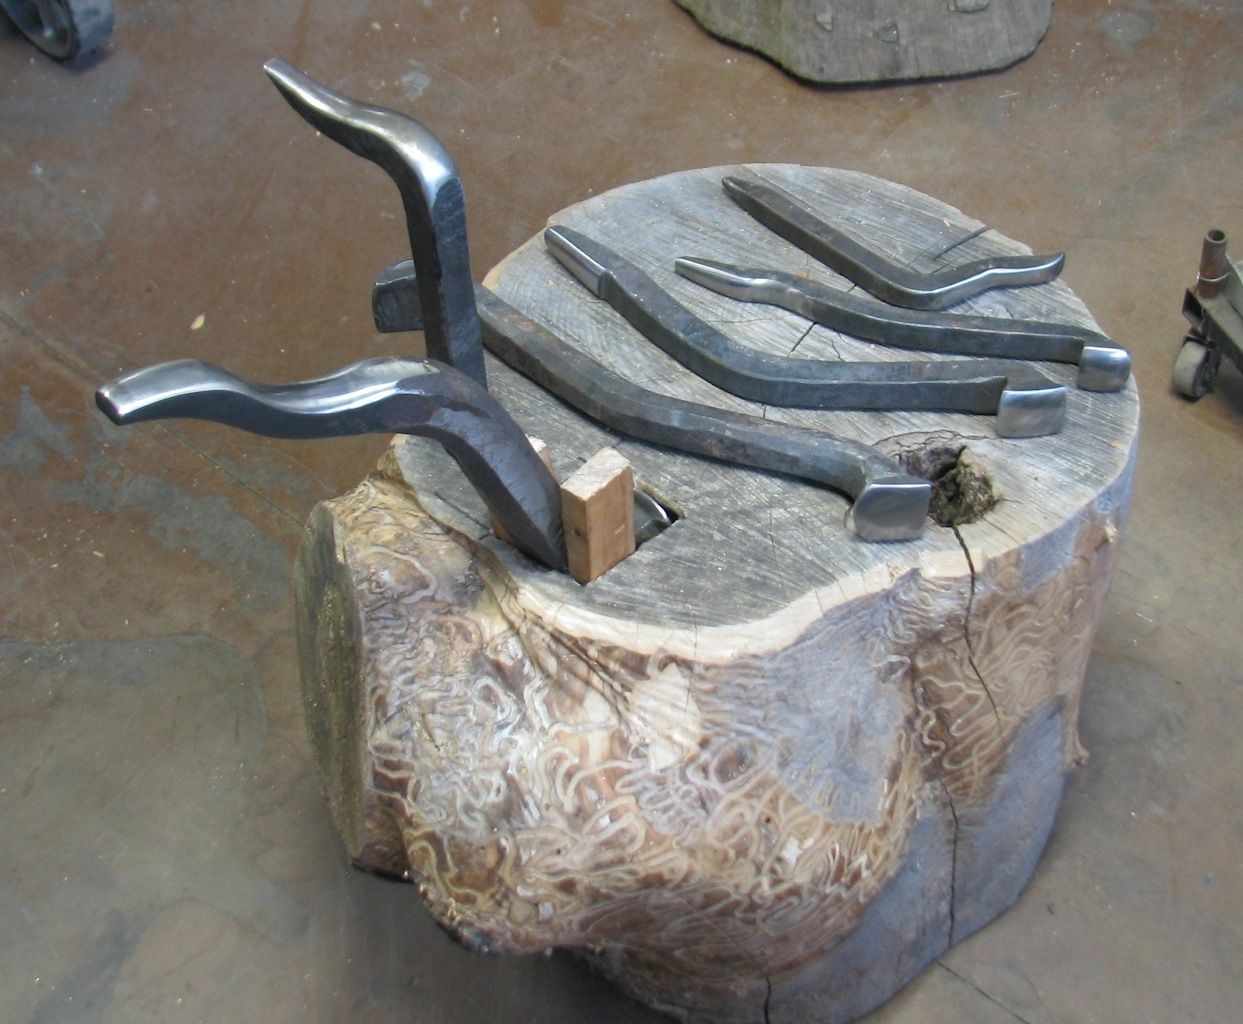 File Php 1 243 1 024 Pixels Japanese Style Stakes Metal Working Blacksmithing Metal Working Projects